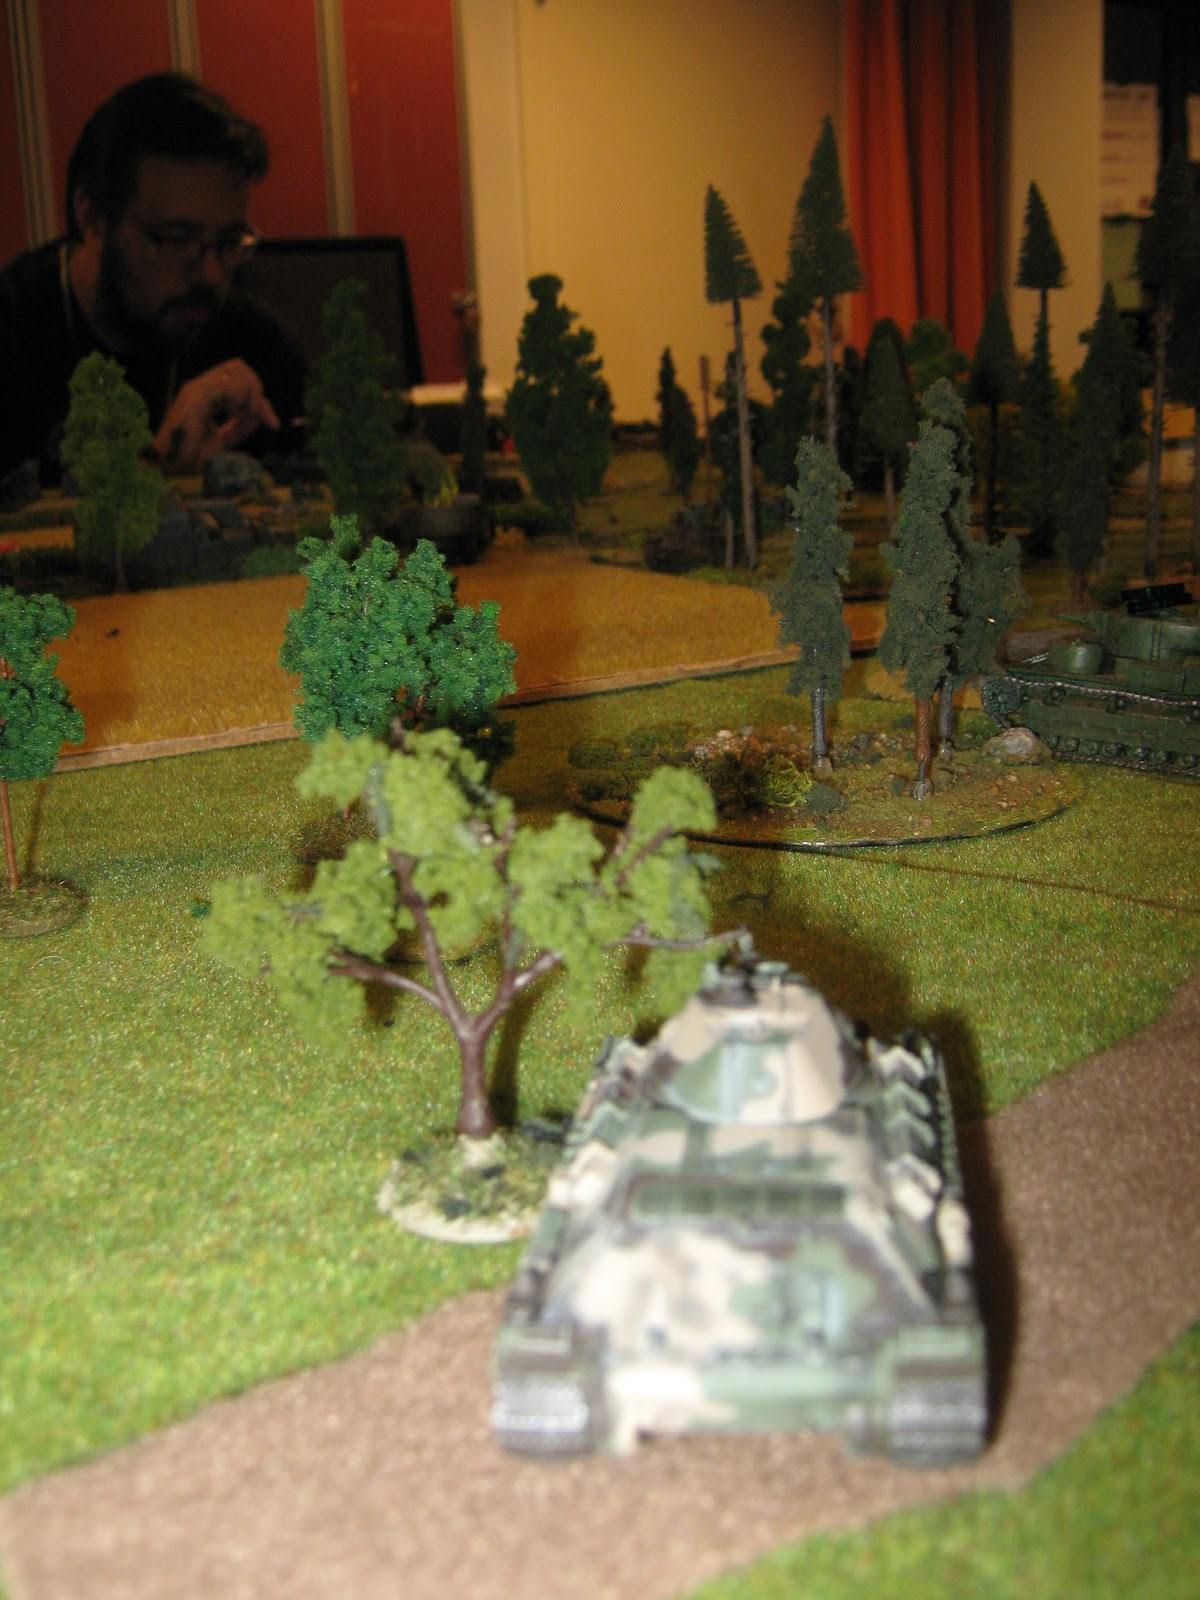 … and after a while a T-34!